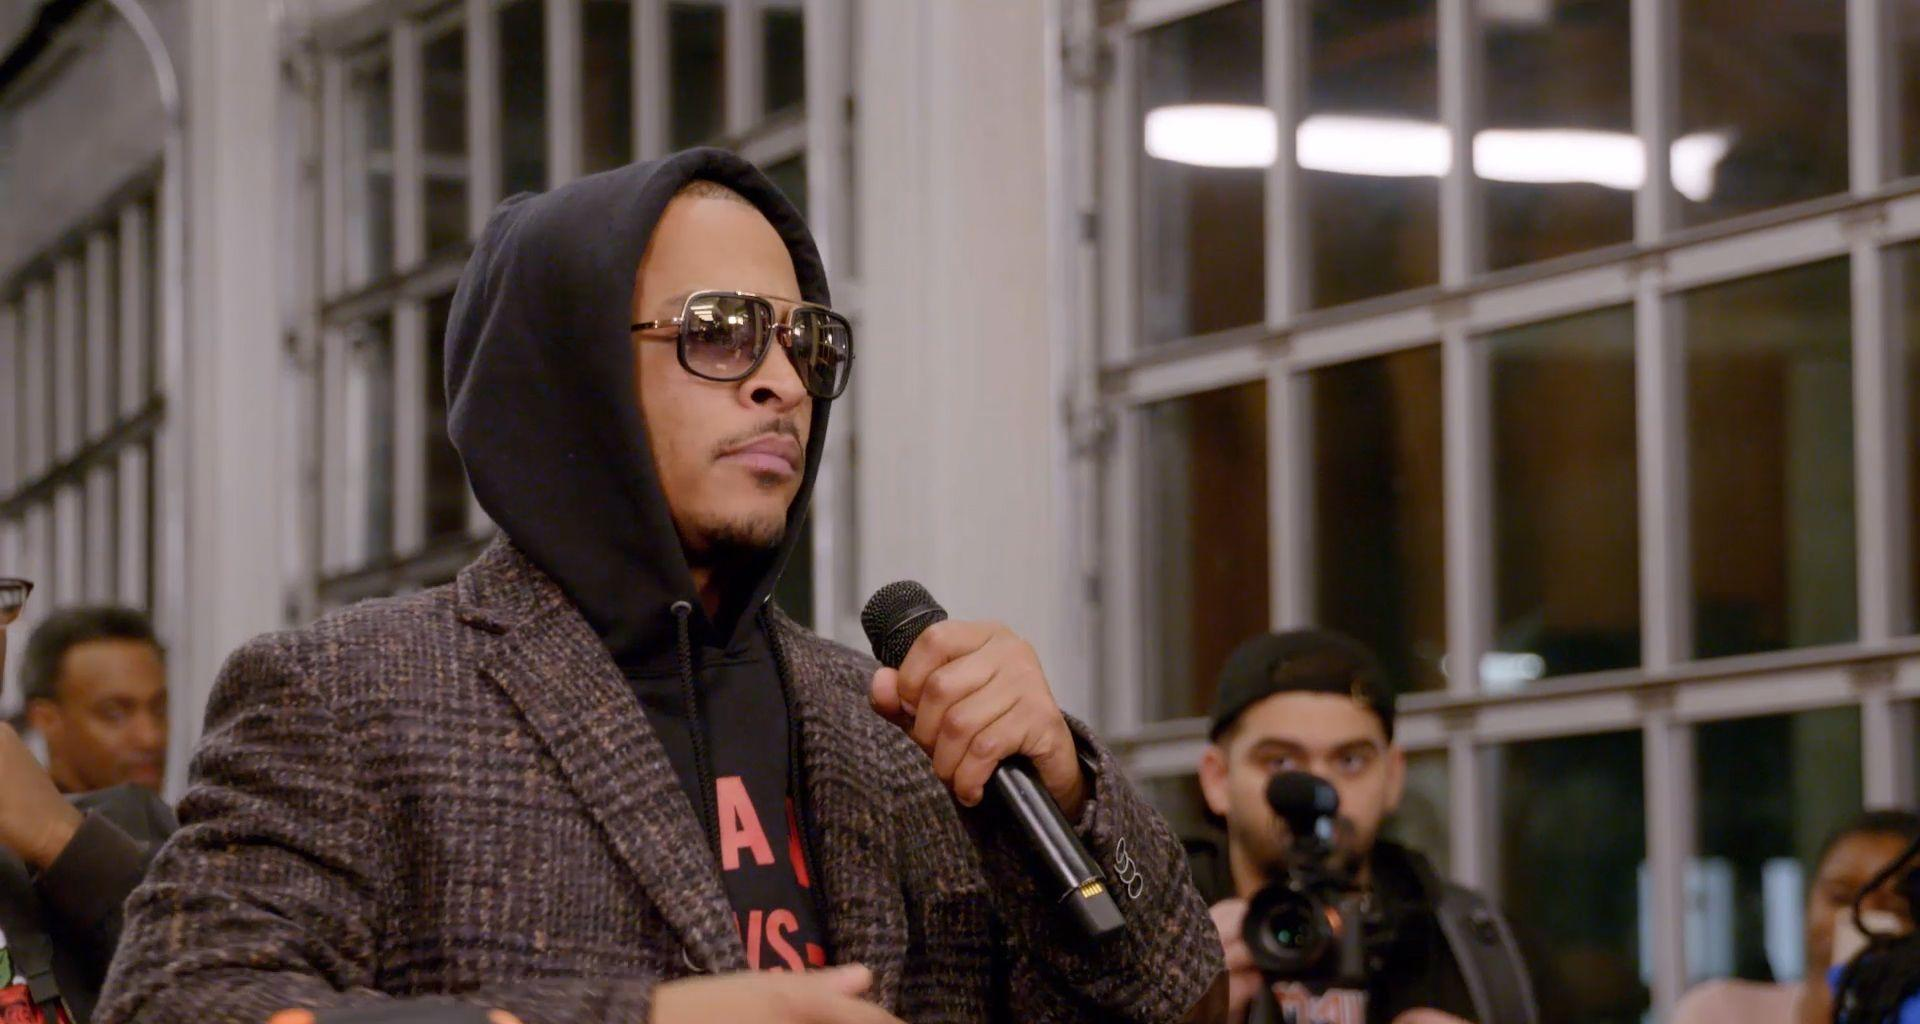 T.I. Shows People How Gun Violence Is Handled In The U.S. Based On Race